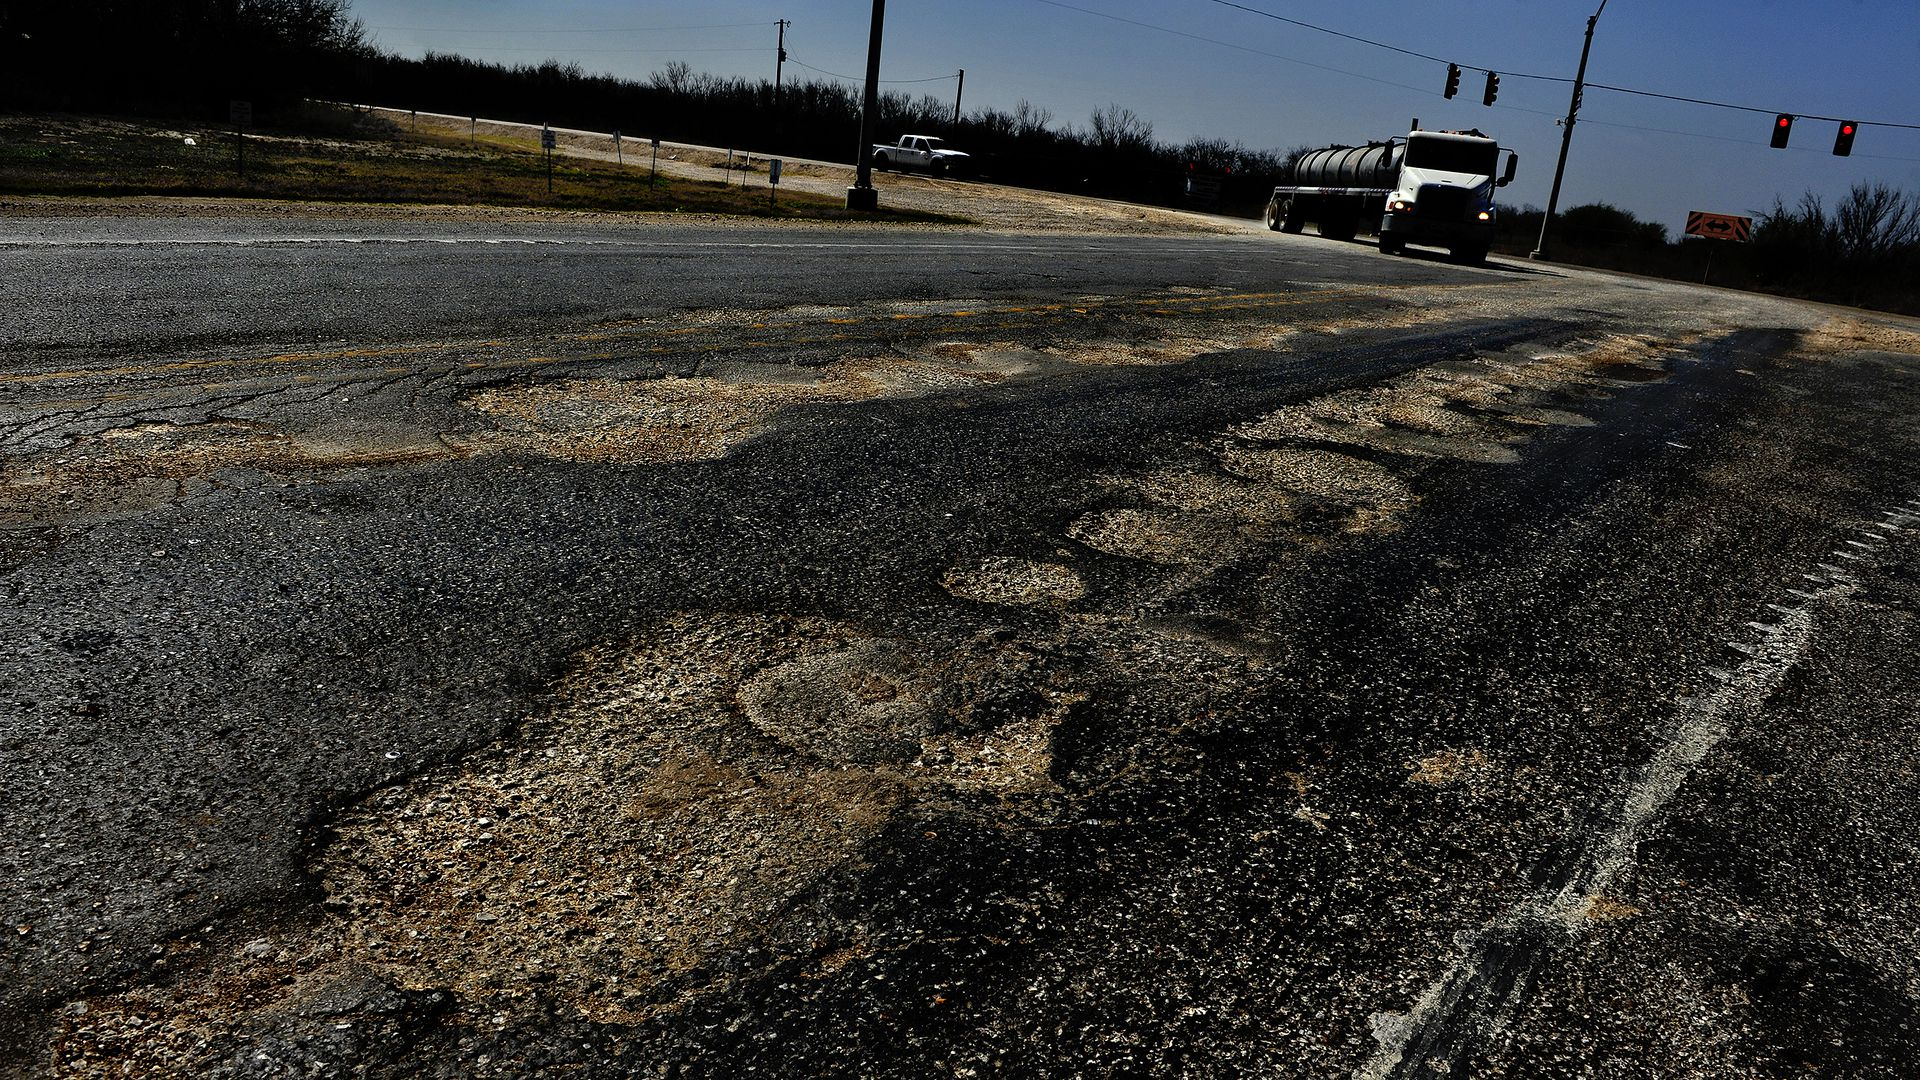 Sections of Highway 72 near Fowlerton, Texas, show the wear and tear from the huge amount of oil industry truck traffic.